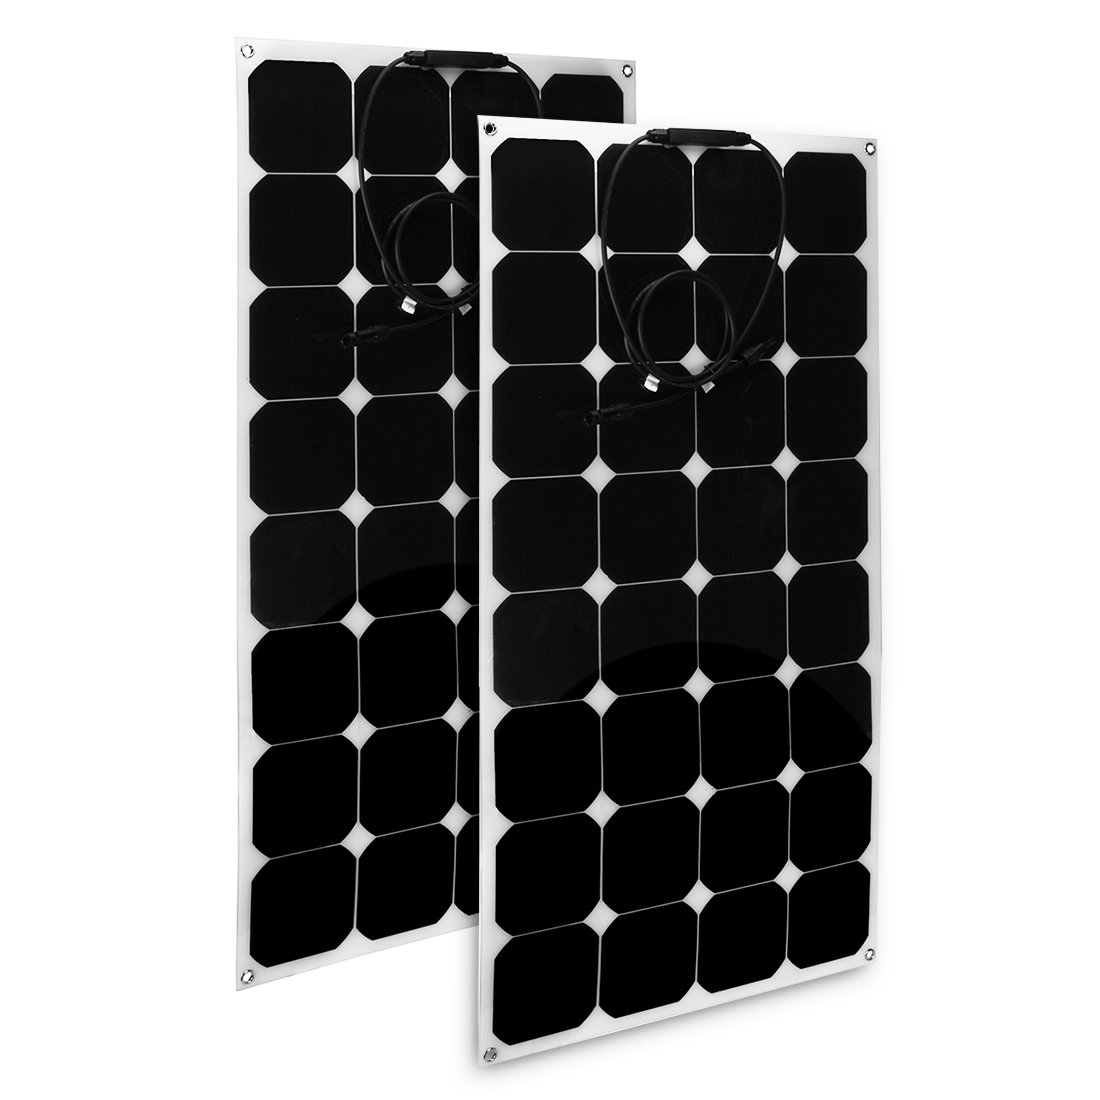 uxcell 2pcs 100W 18V 12V Solar Panel Charger Solar Cell Ultra Thin Flexible with MC4 Connector Charging for RV Boat Cabin Tent Car